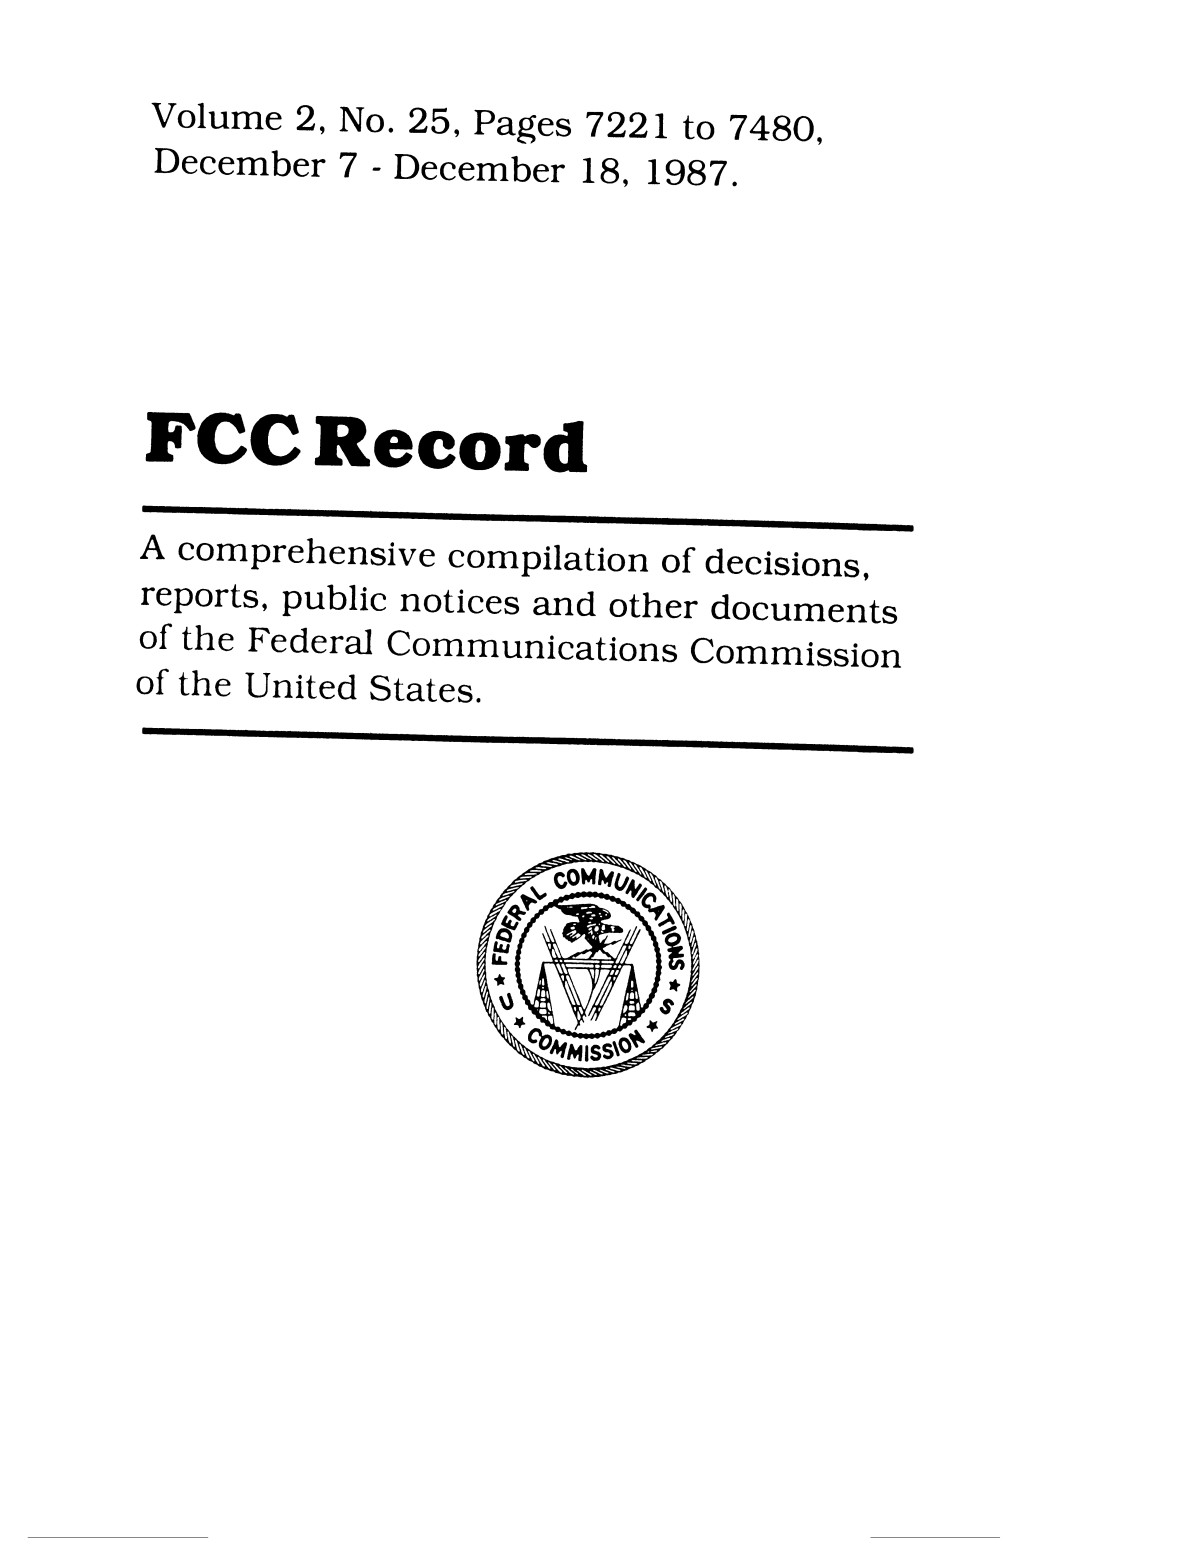 FCC Record, Volume 2, No. 25, Pages 7221 to 7480, December 7 - December 18, 1987                                                                                                      Front Cover